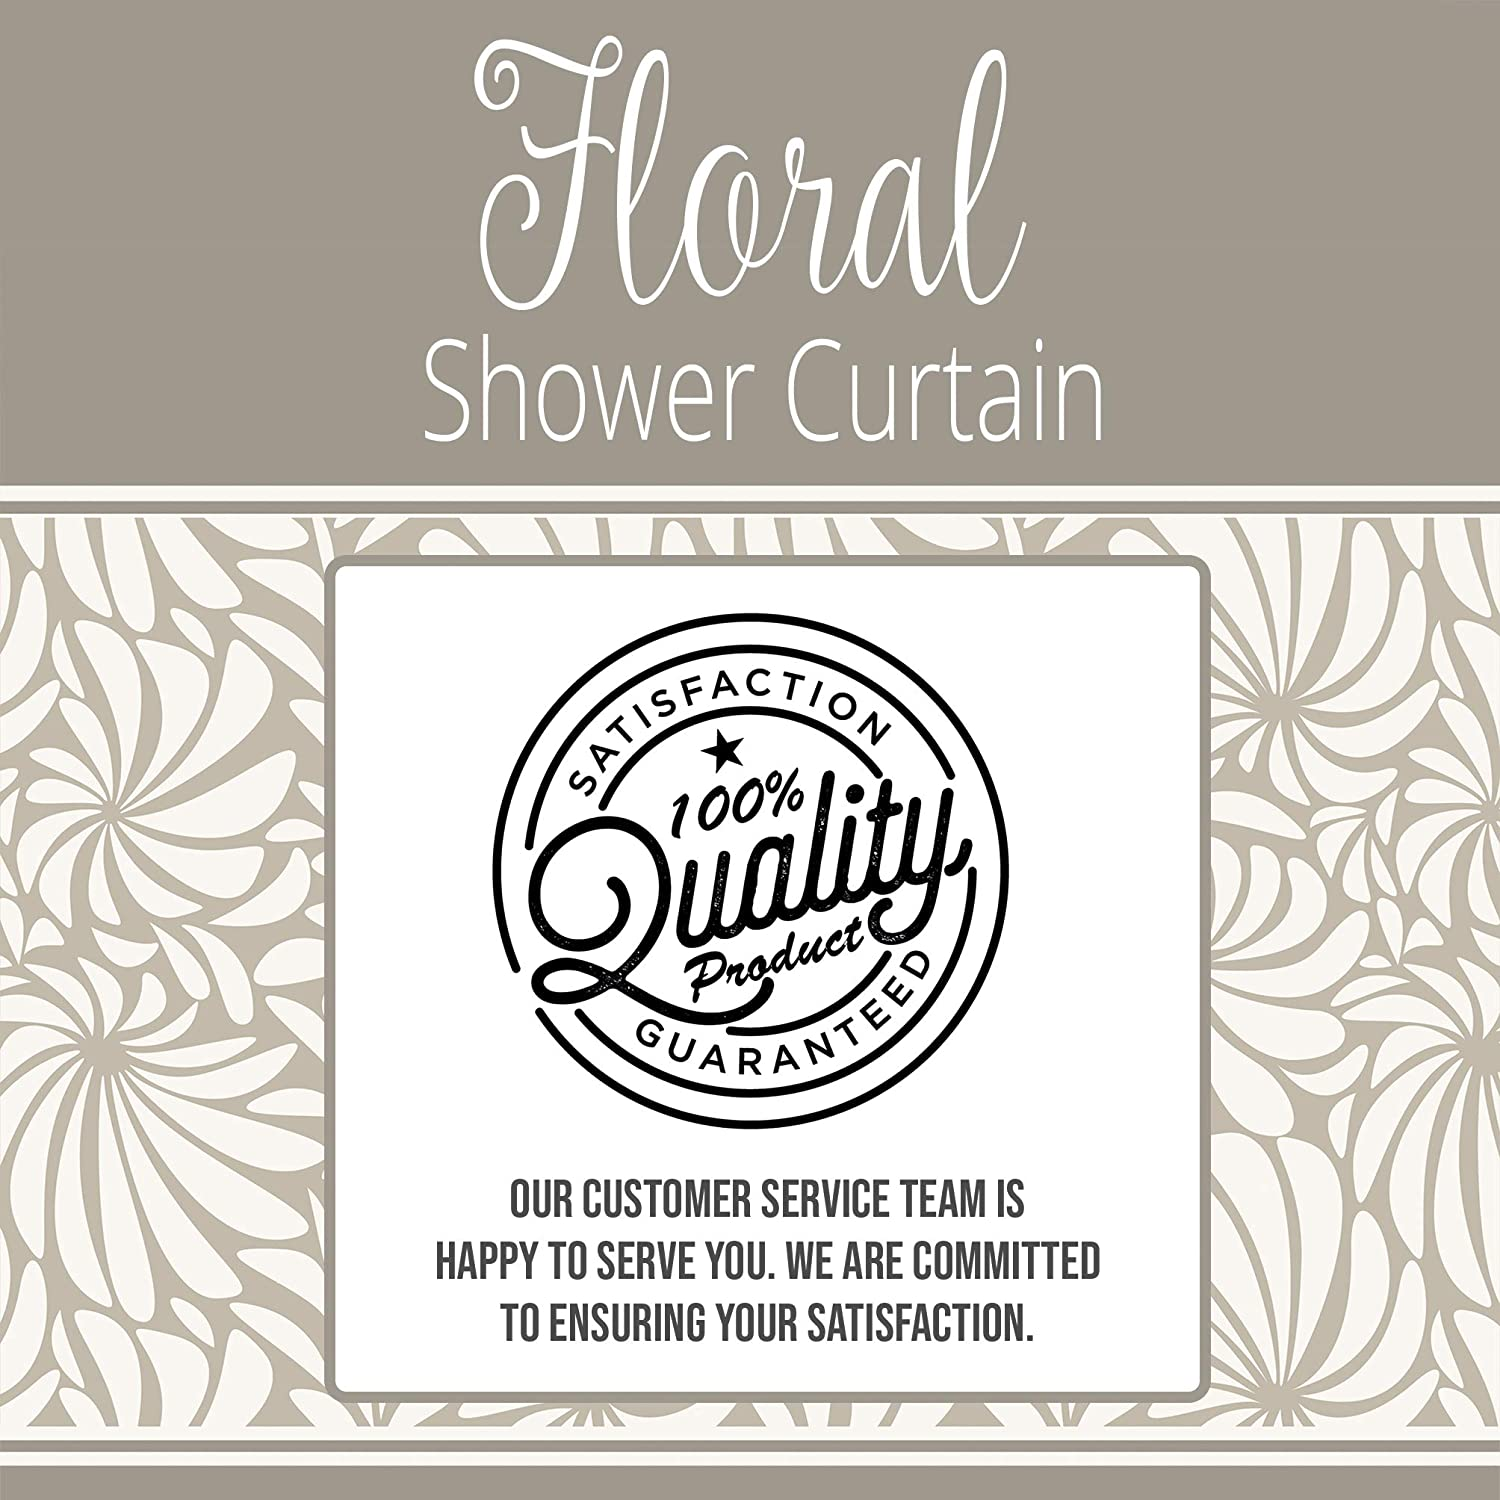 Abstract Flower Shower Curtain Dekali Designs Grey and White Shower Curtain with Floral Design Waterproof Mold-Resistant Fabric